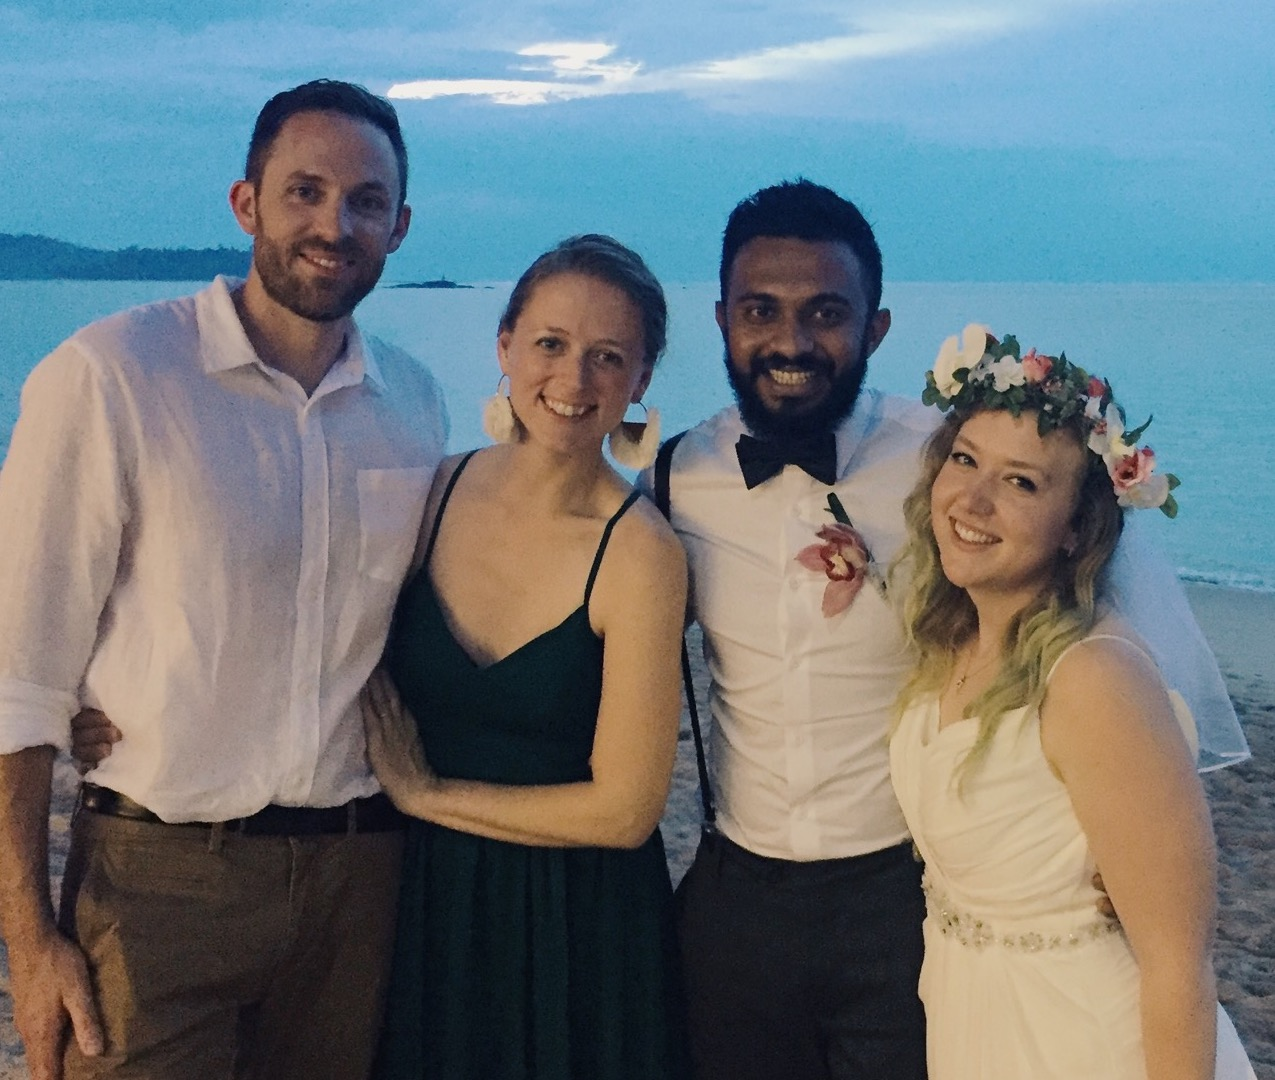 We travelled to Thailand to officiate the wedding of Joe and Lydia Jay.